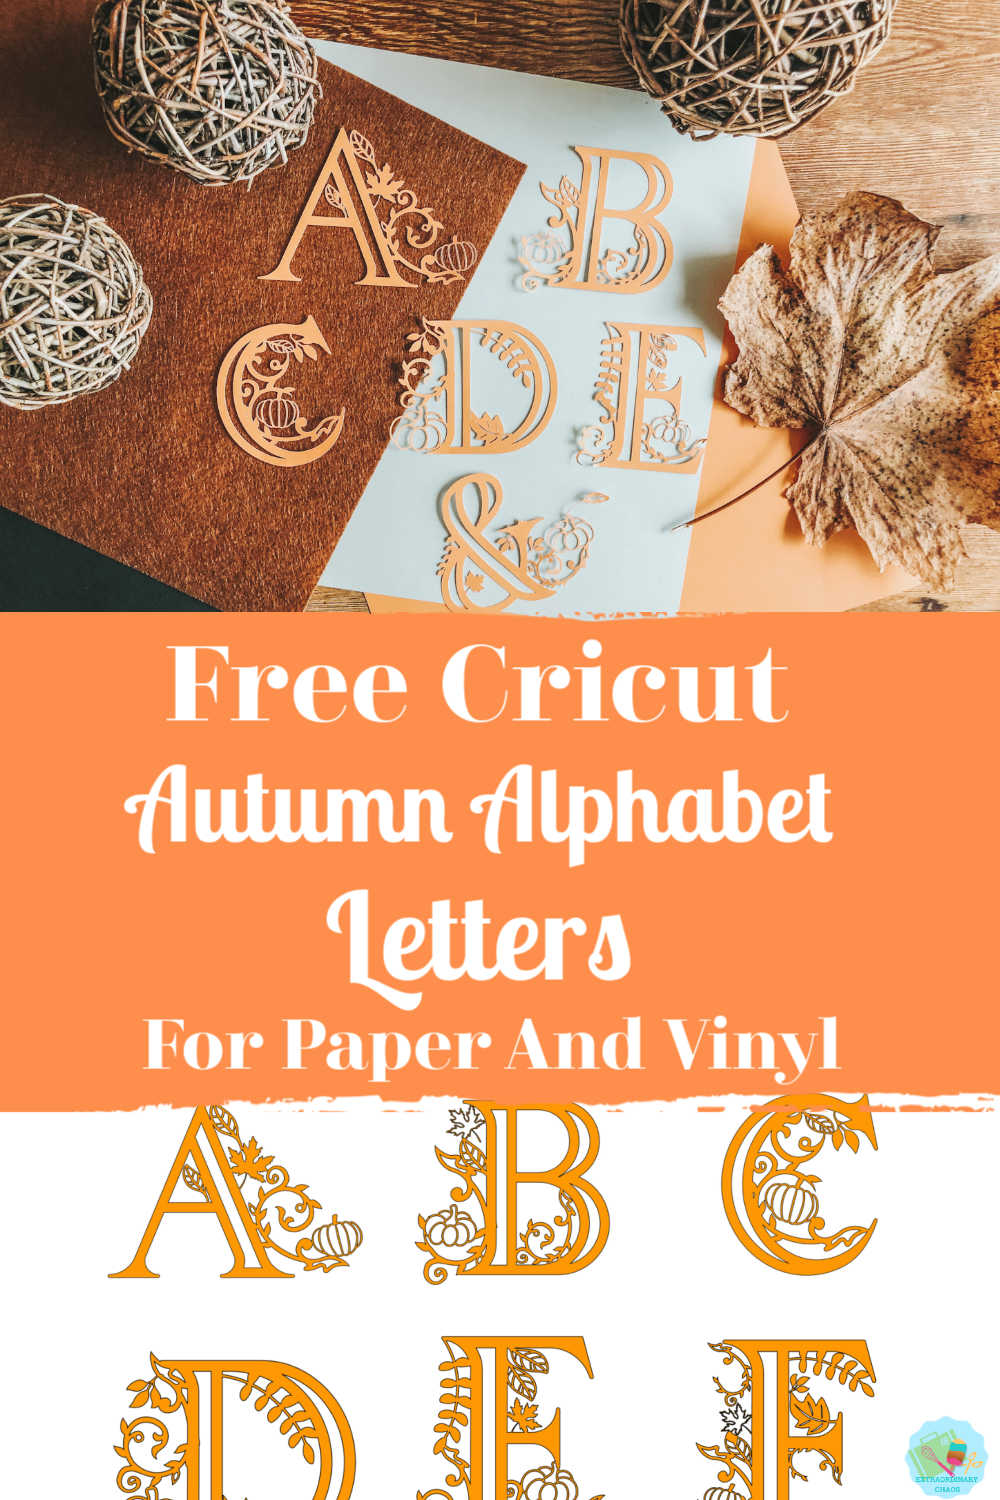 Free Cricut Autumn/fall Alphabet letters for paper and vinyl projects